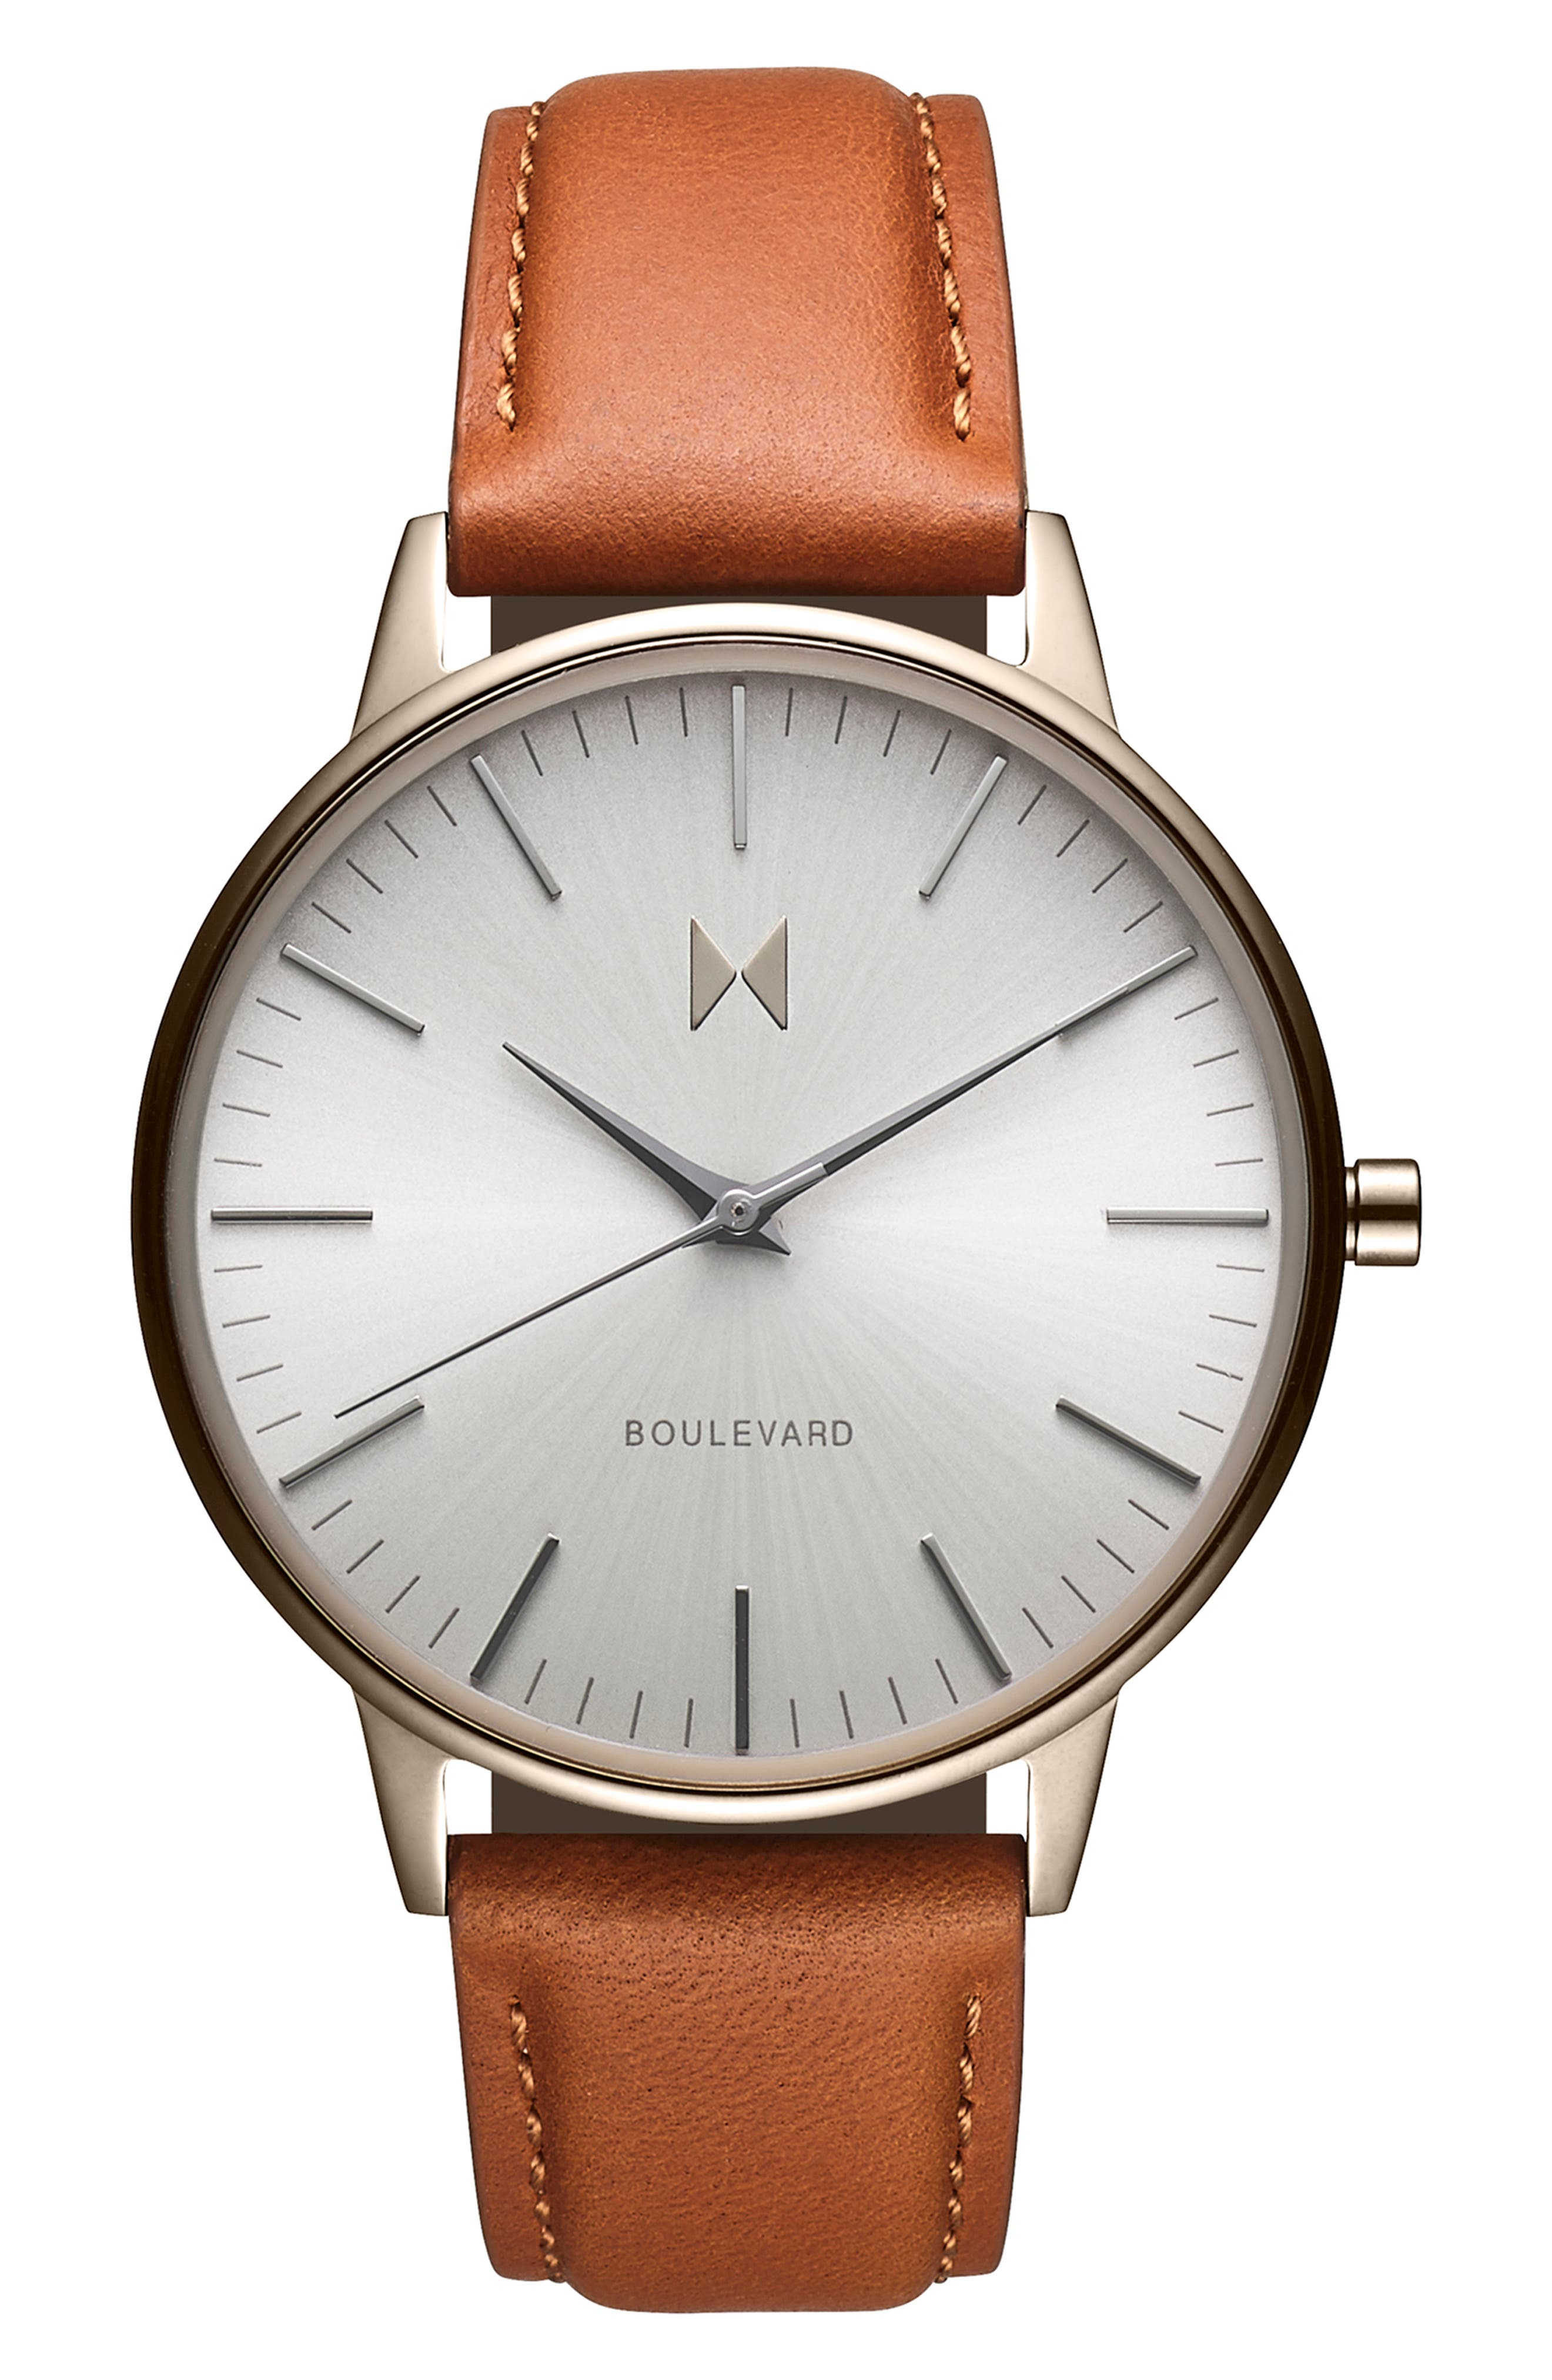 Boulevard Leather Strap Watch